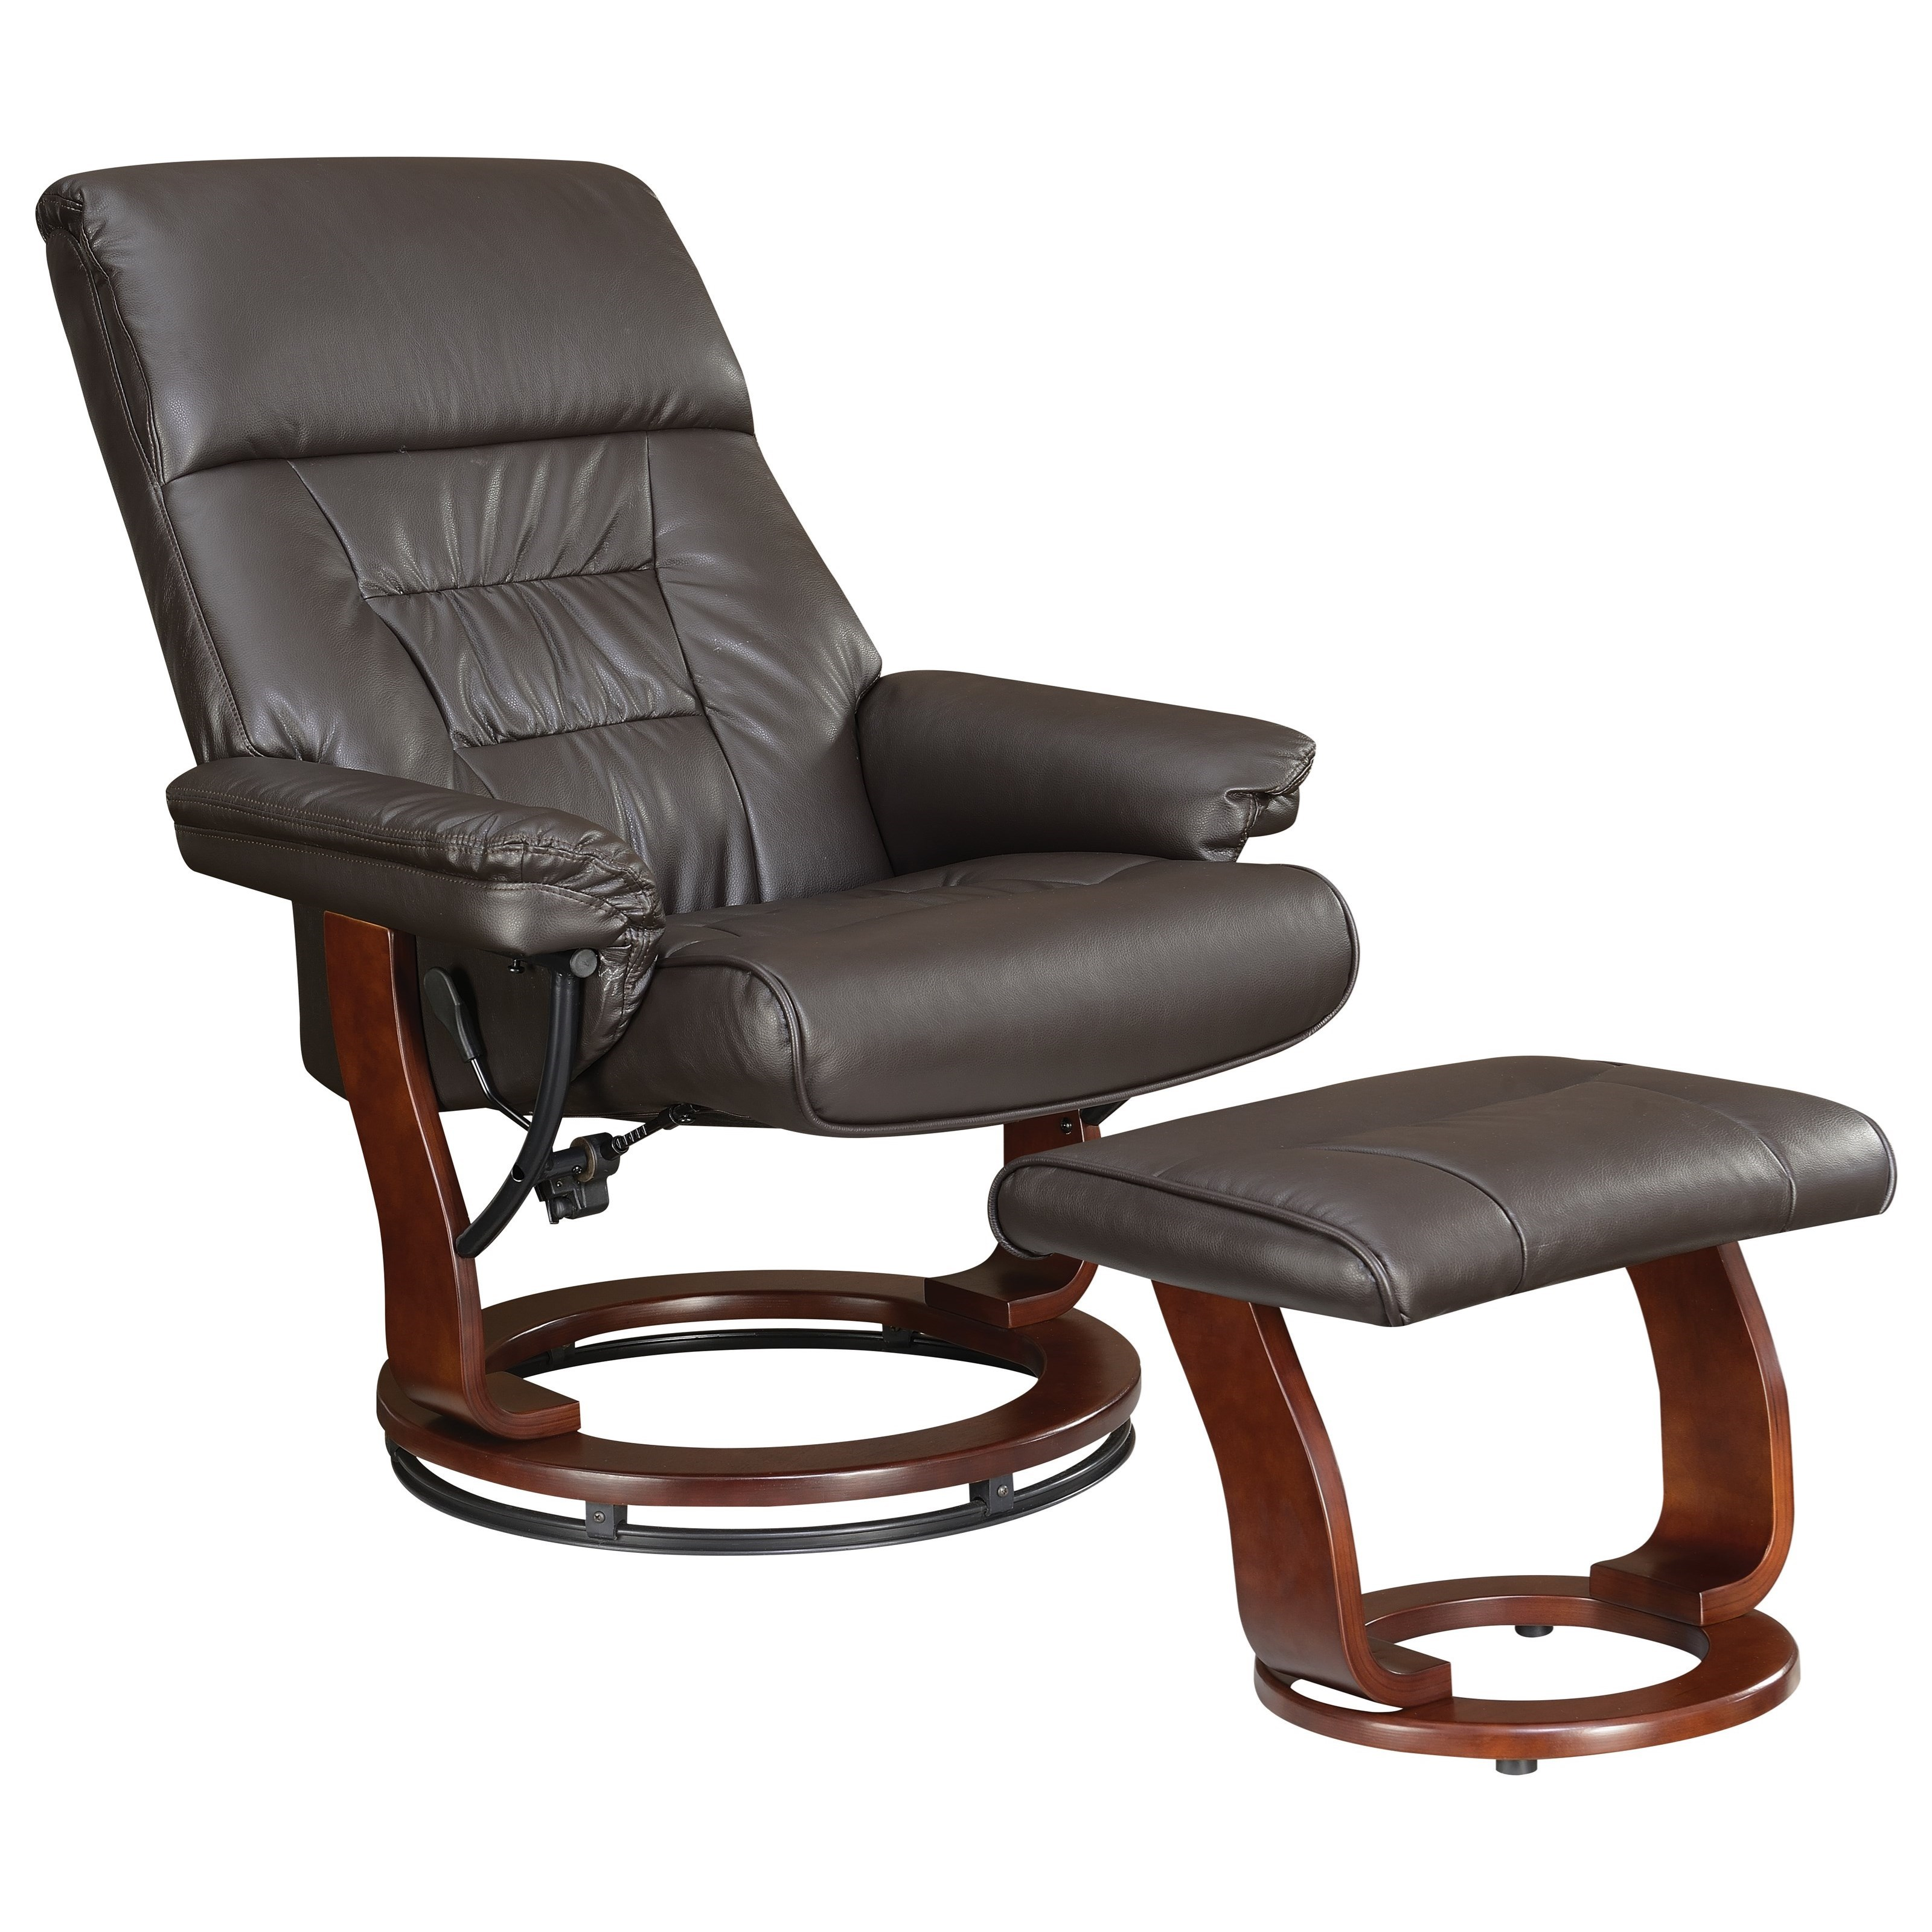 Coaster Recliners with Ottomans Chair and Ottoman - Item Number: 600084